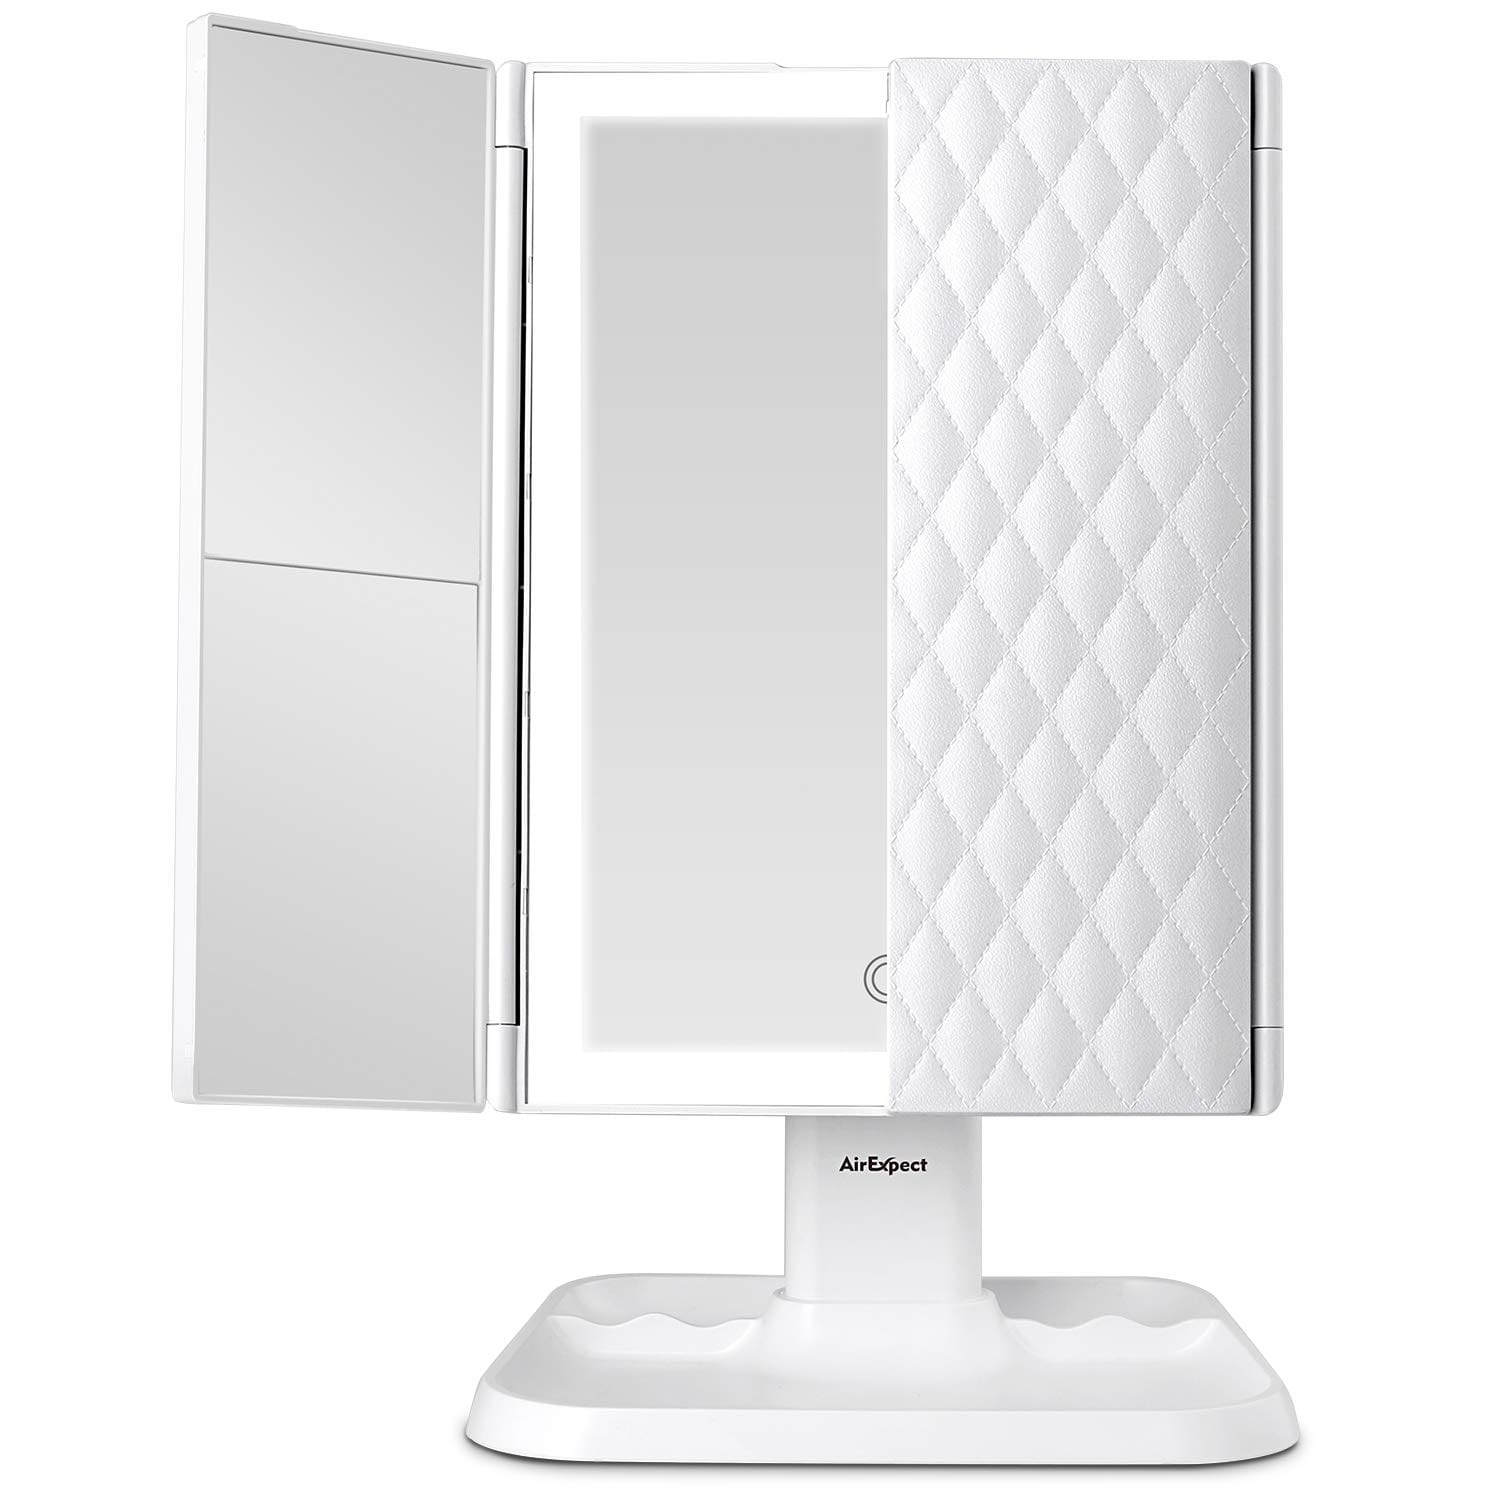 AirExpect Makeup Mirror Vanity Mirror with Lights - 3 Color Lighting Modes 72 LED Trifold Mirror